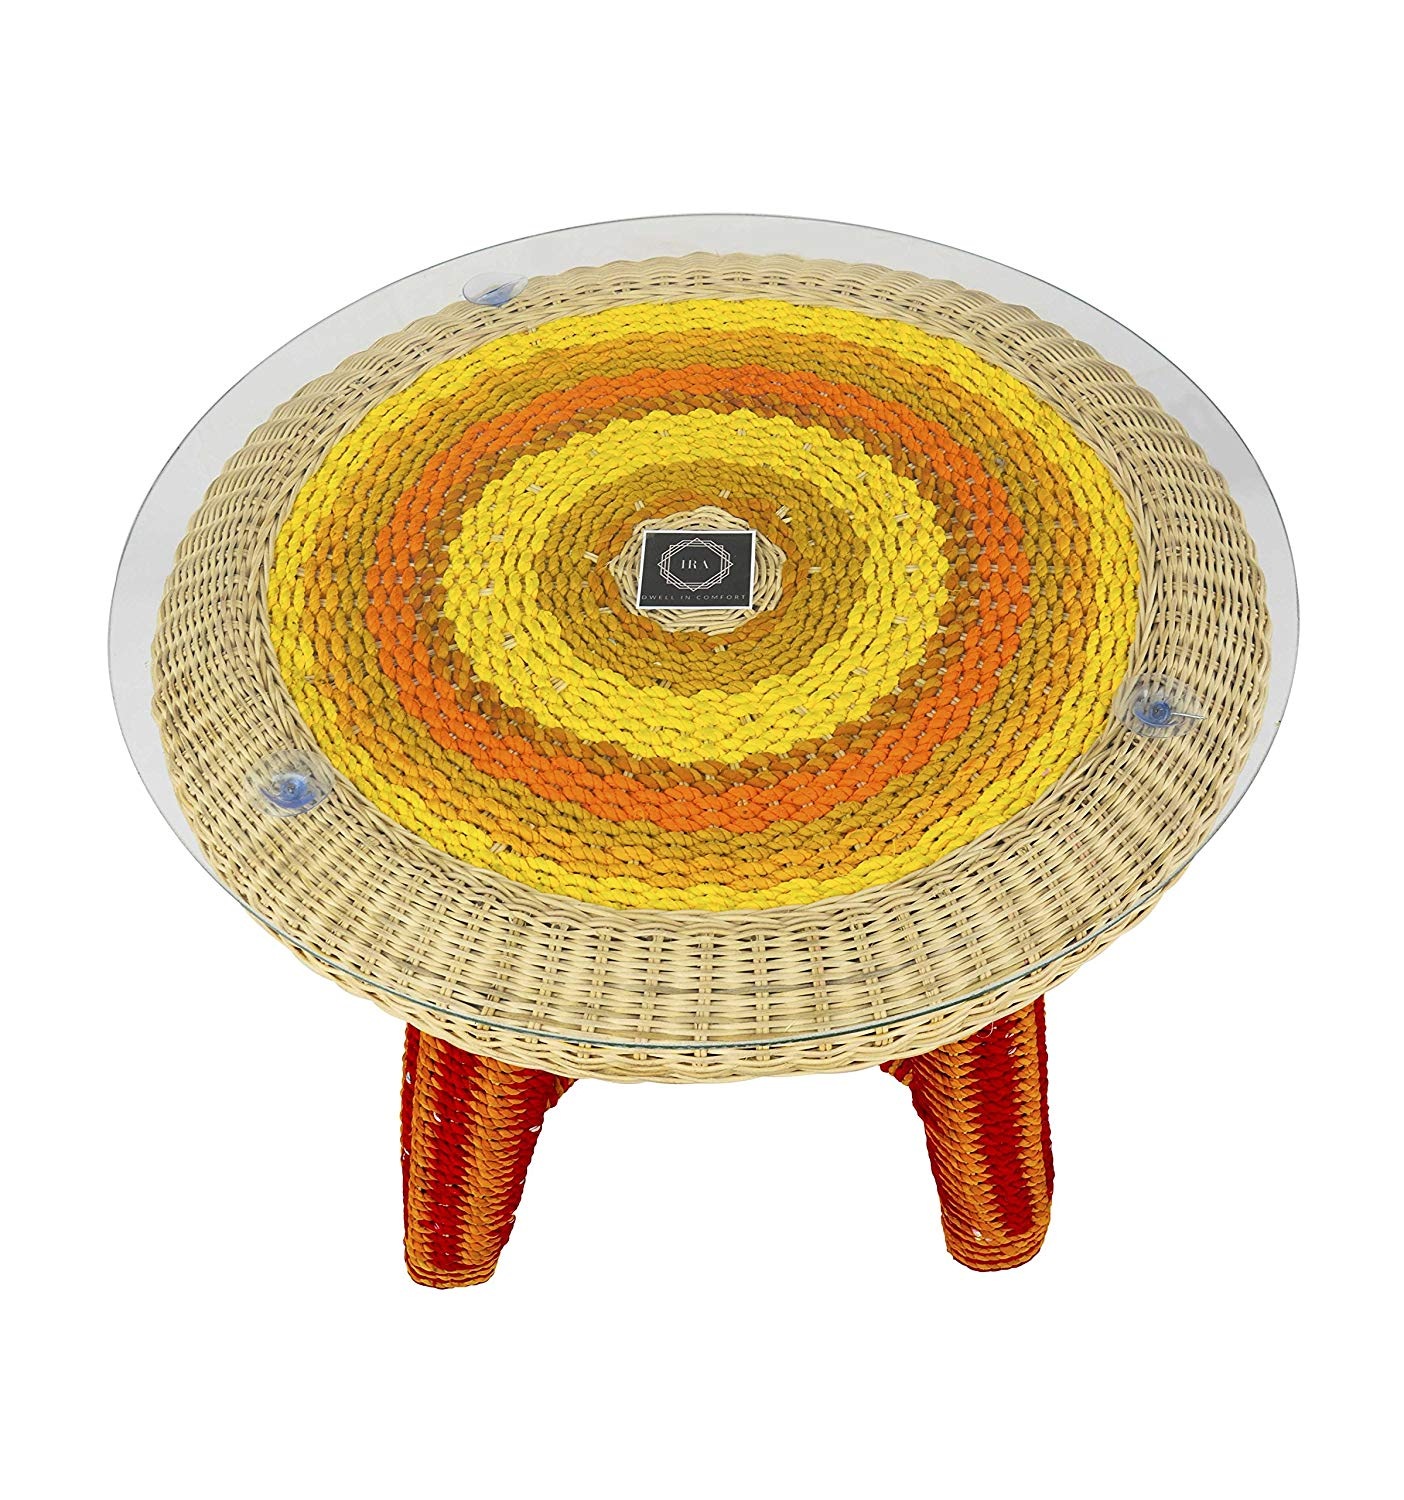 IRA Colorful Designer Indoor and Outdoor Table - IRA Furniture